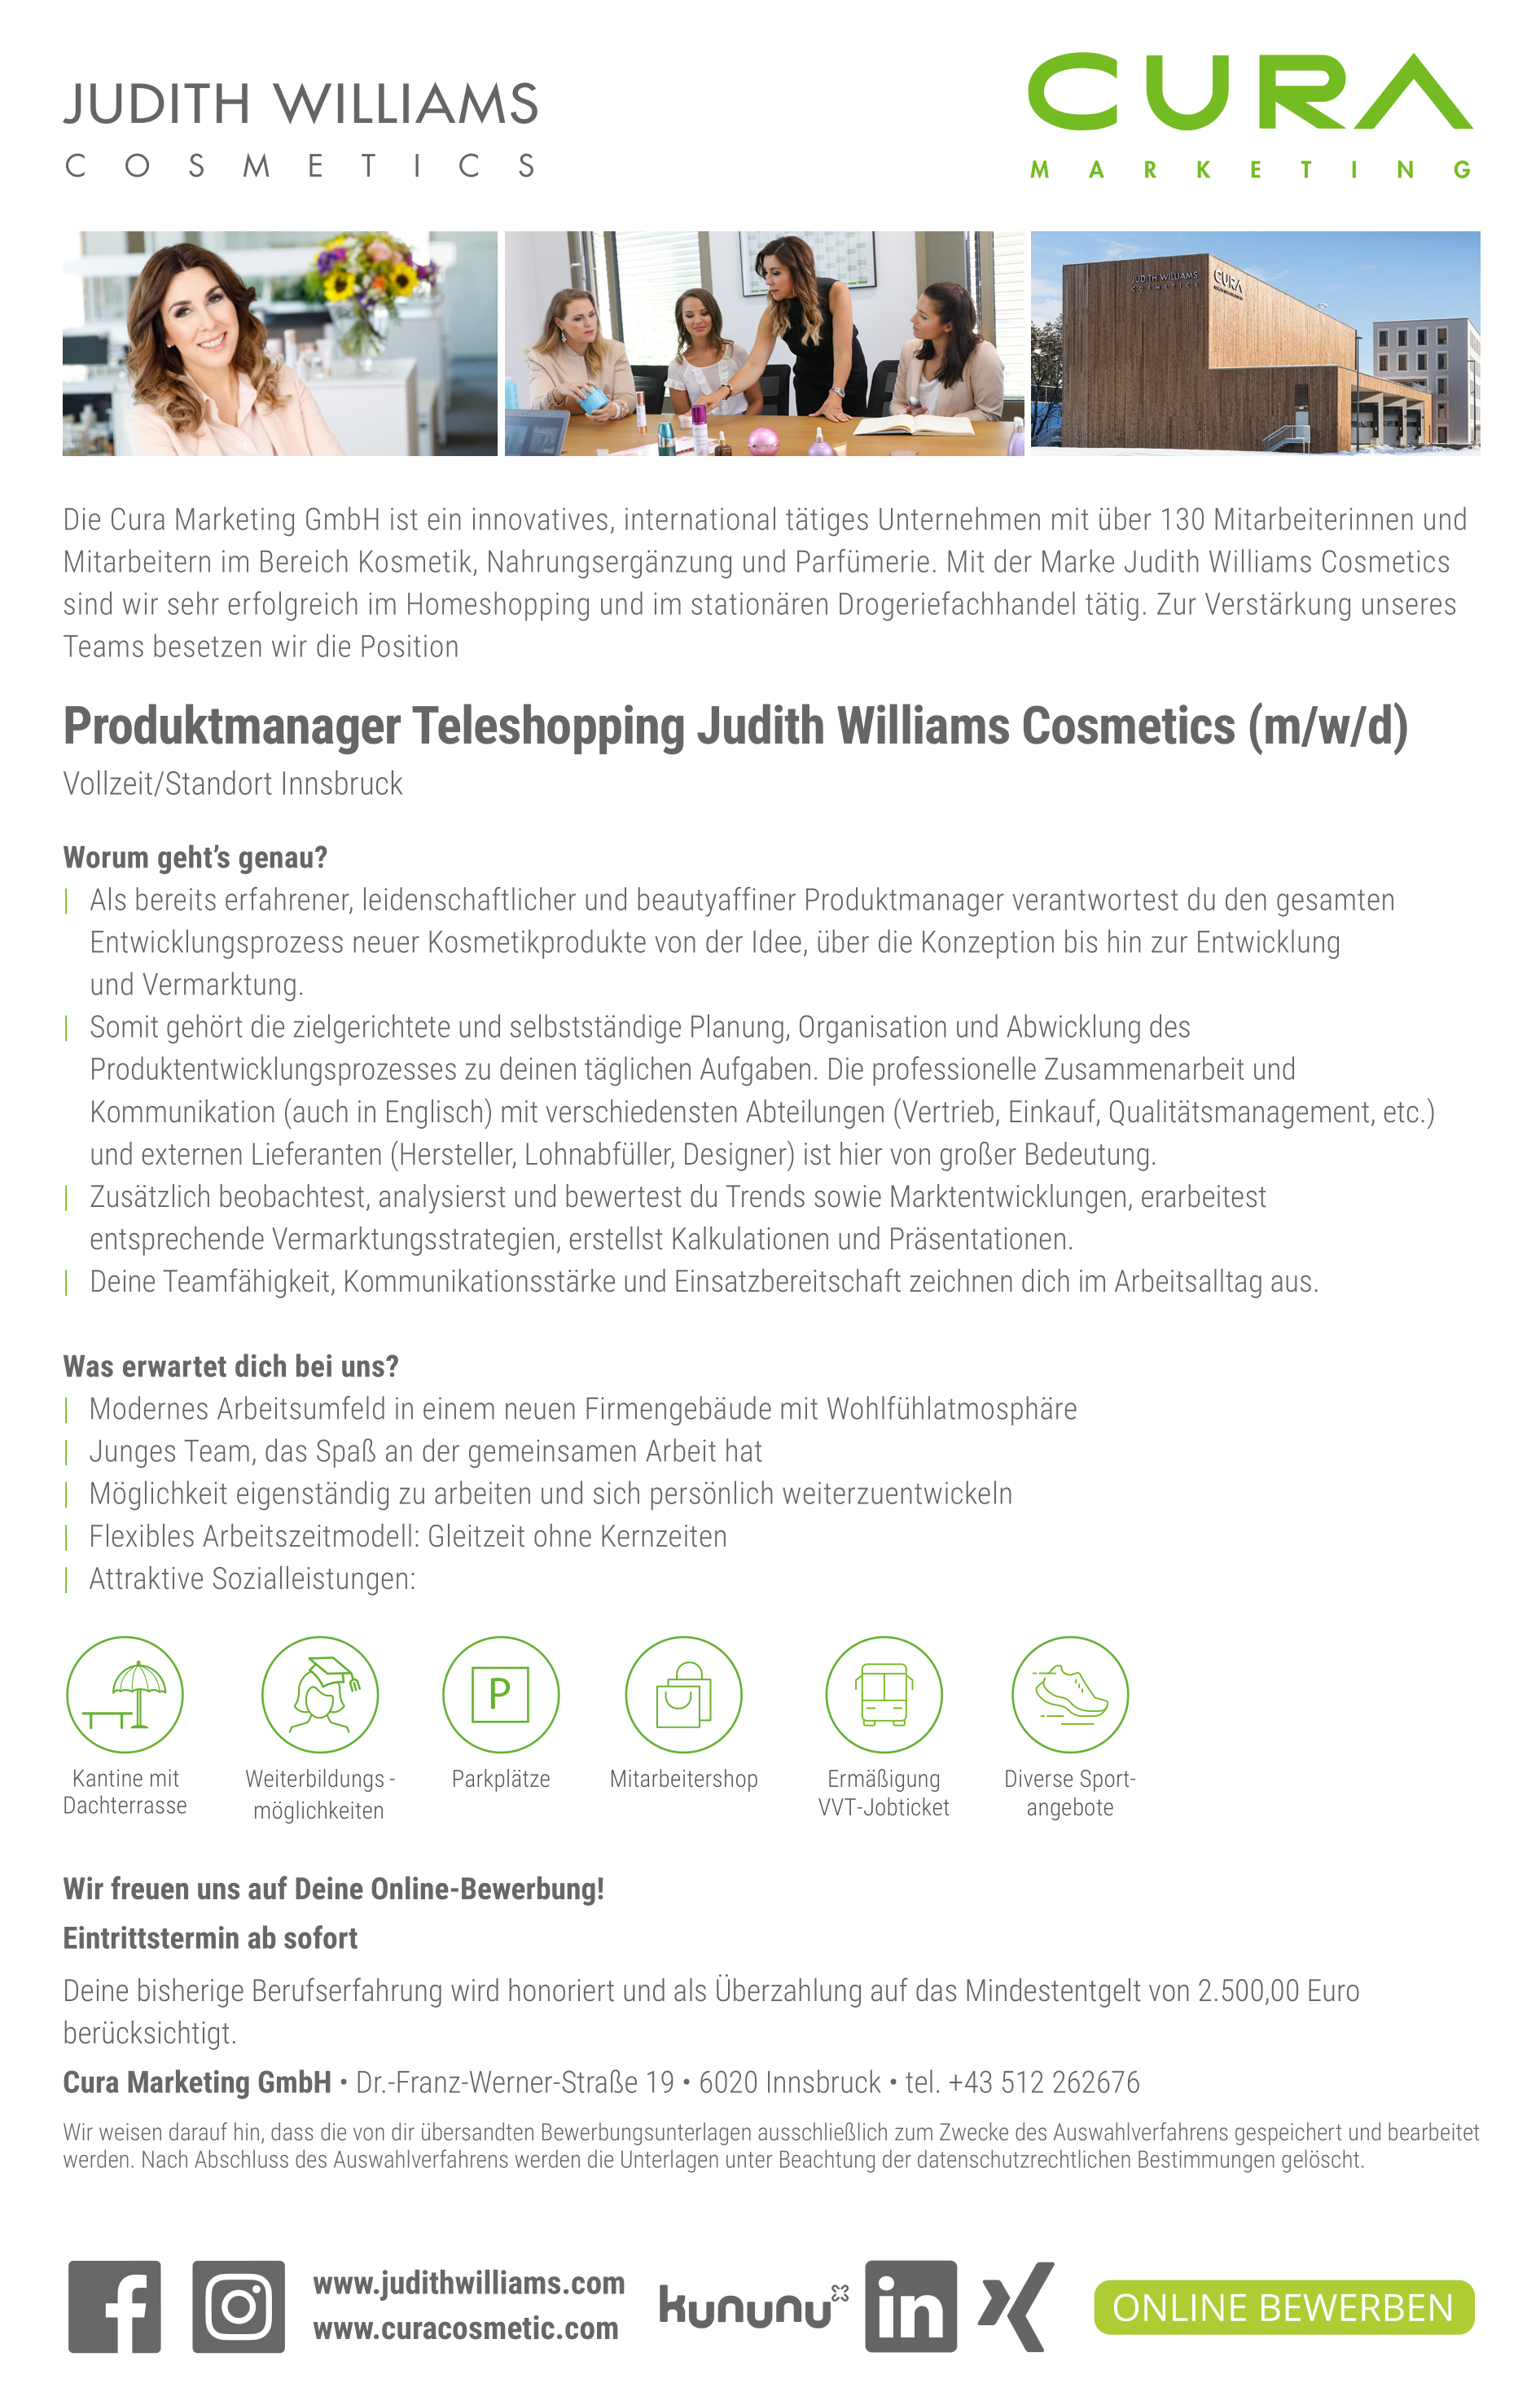 Produktmanager Judith Williams Cosmetics Teleshopping (m/w/d)